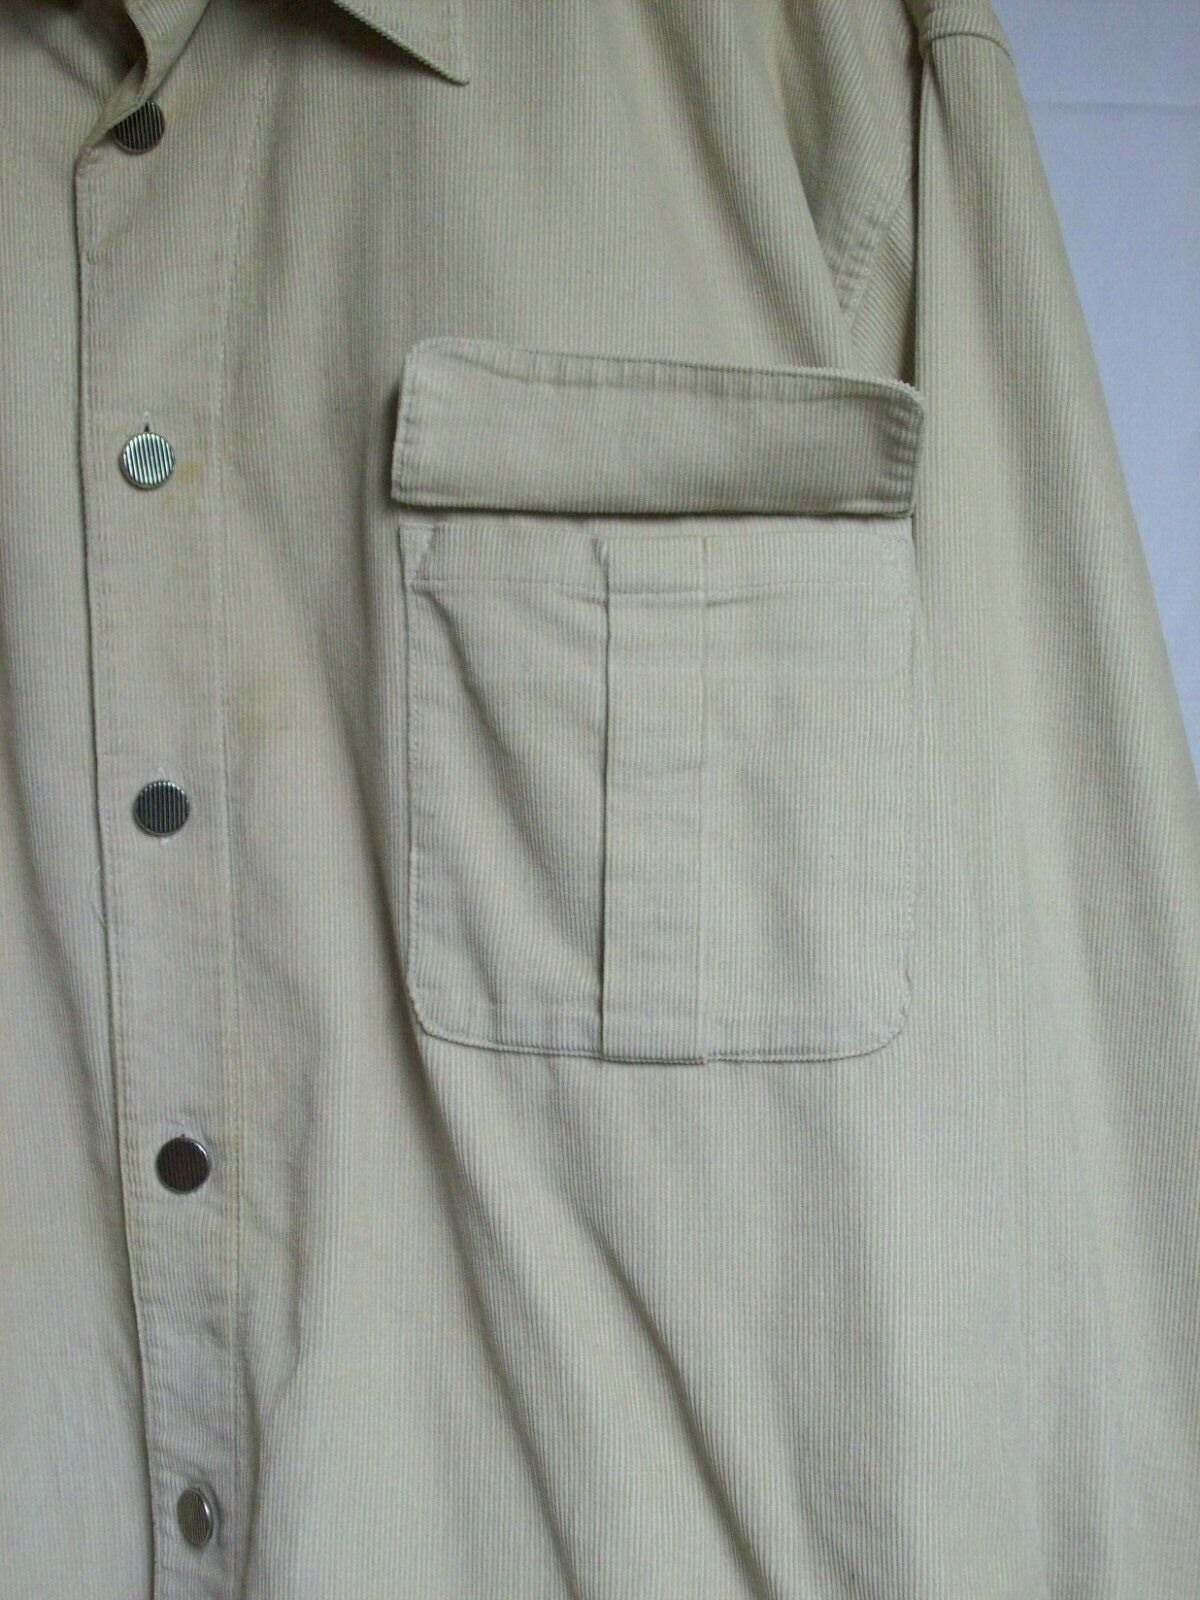 Vintage Mens Western Cotton Corduroy Overshirt XL… - image 5